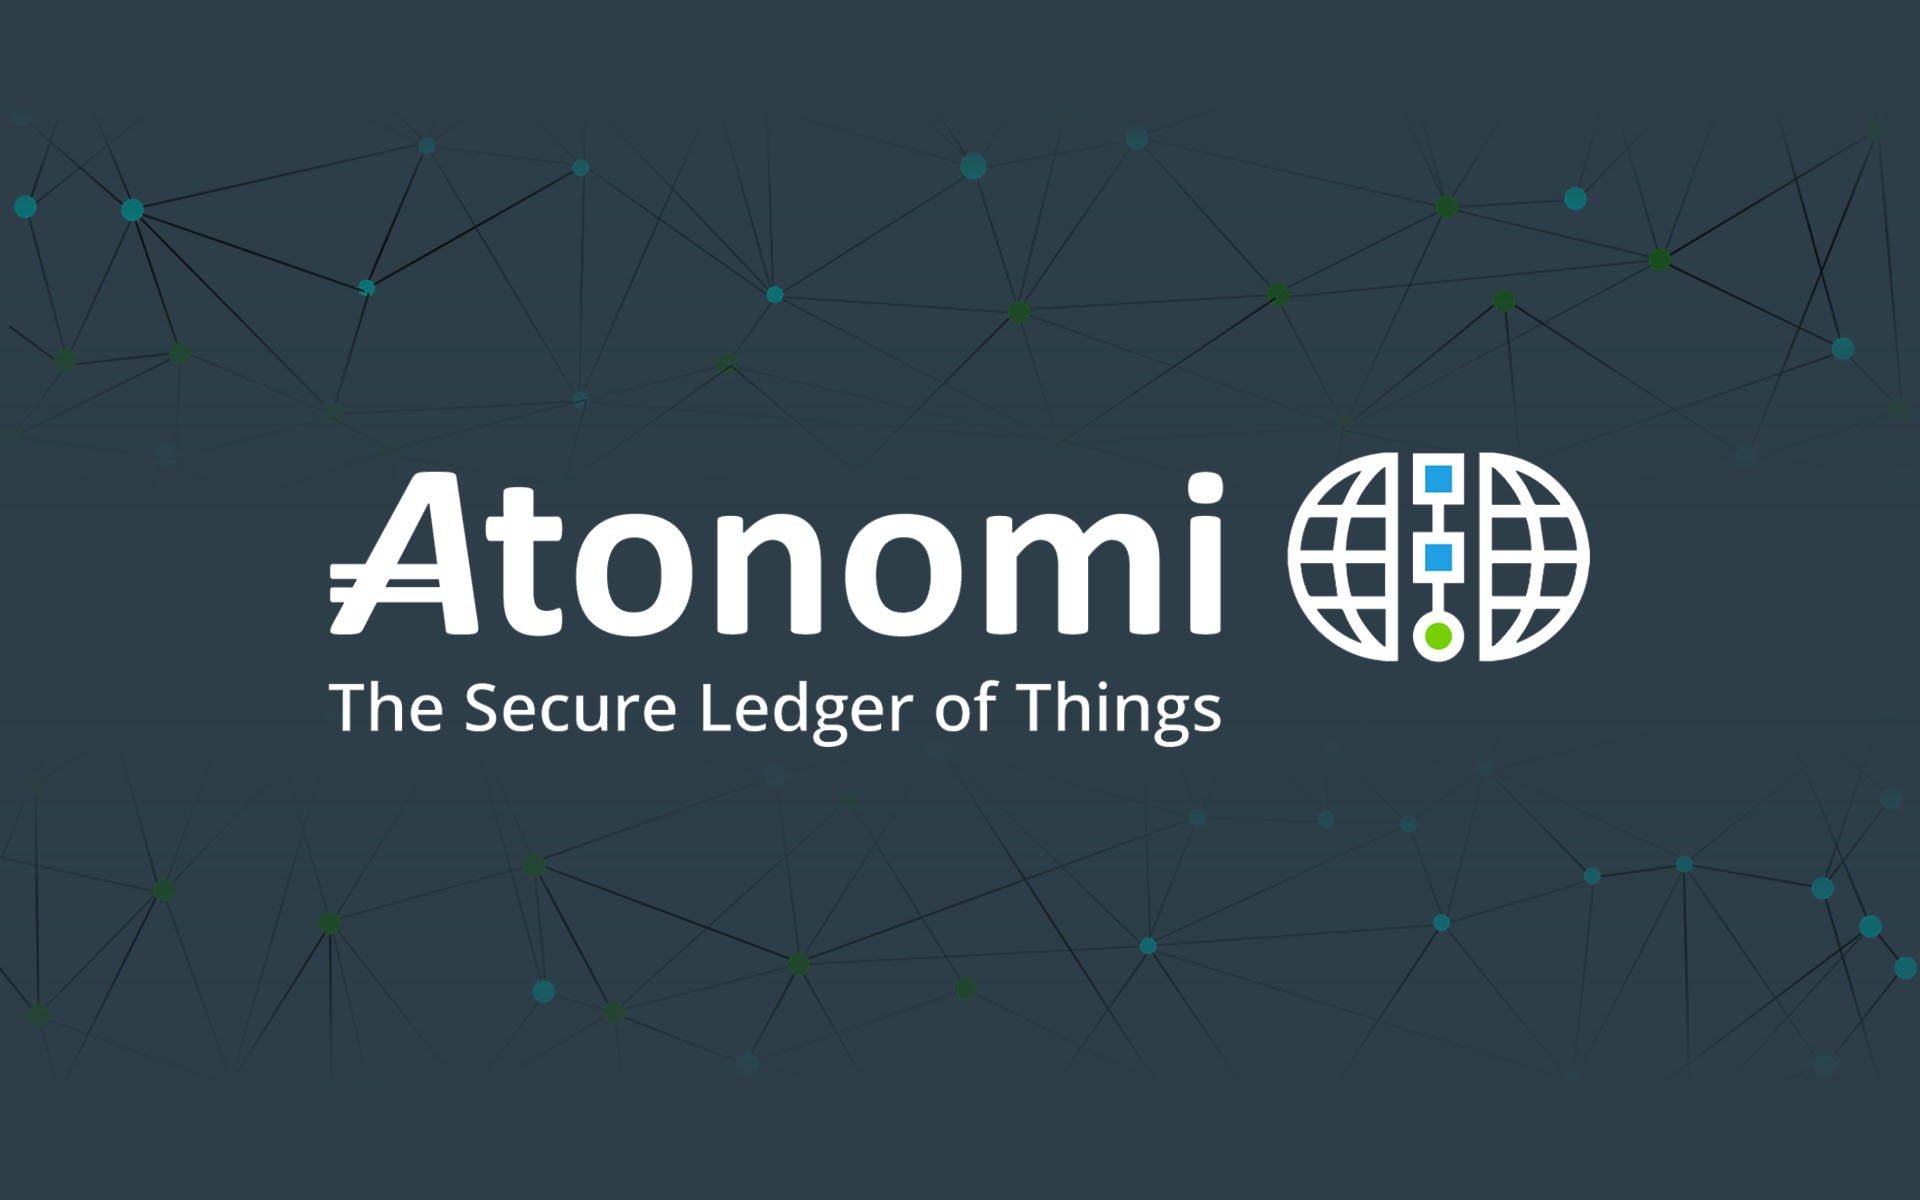 Atonomi Launches Identity Registry Network Beta to Enable Secure Interoperability for the Internet of Things